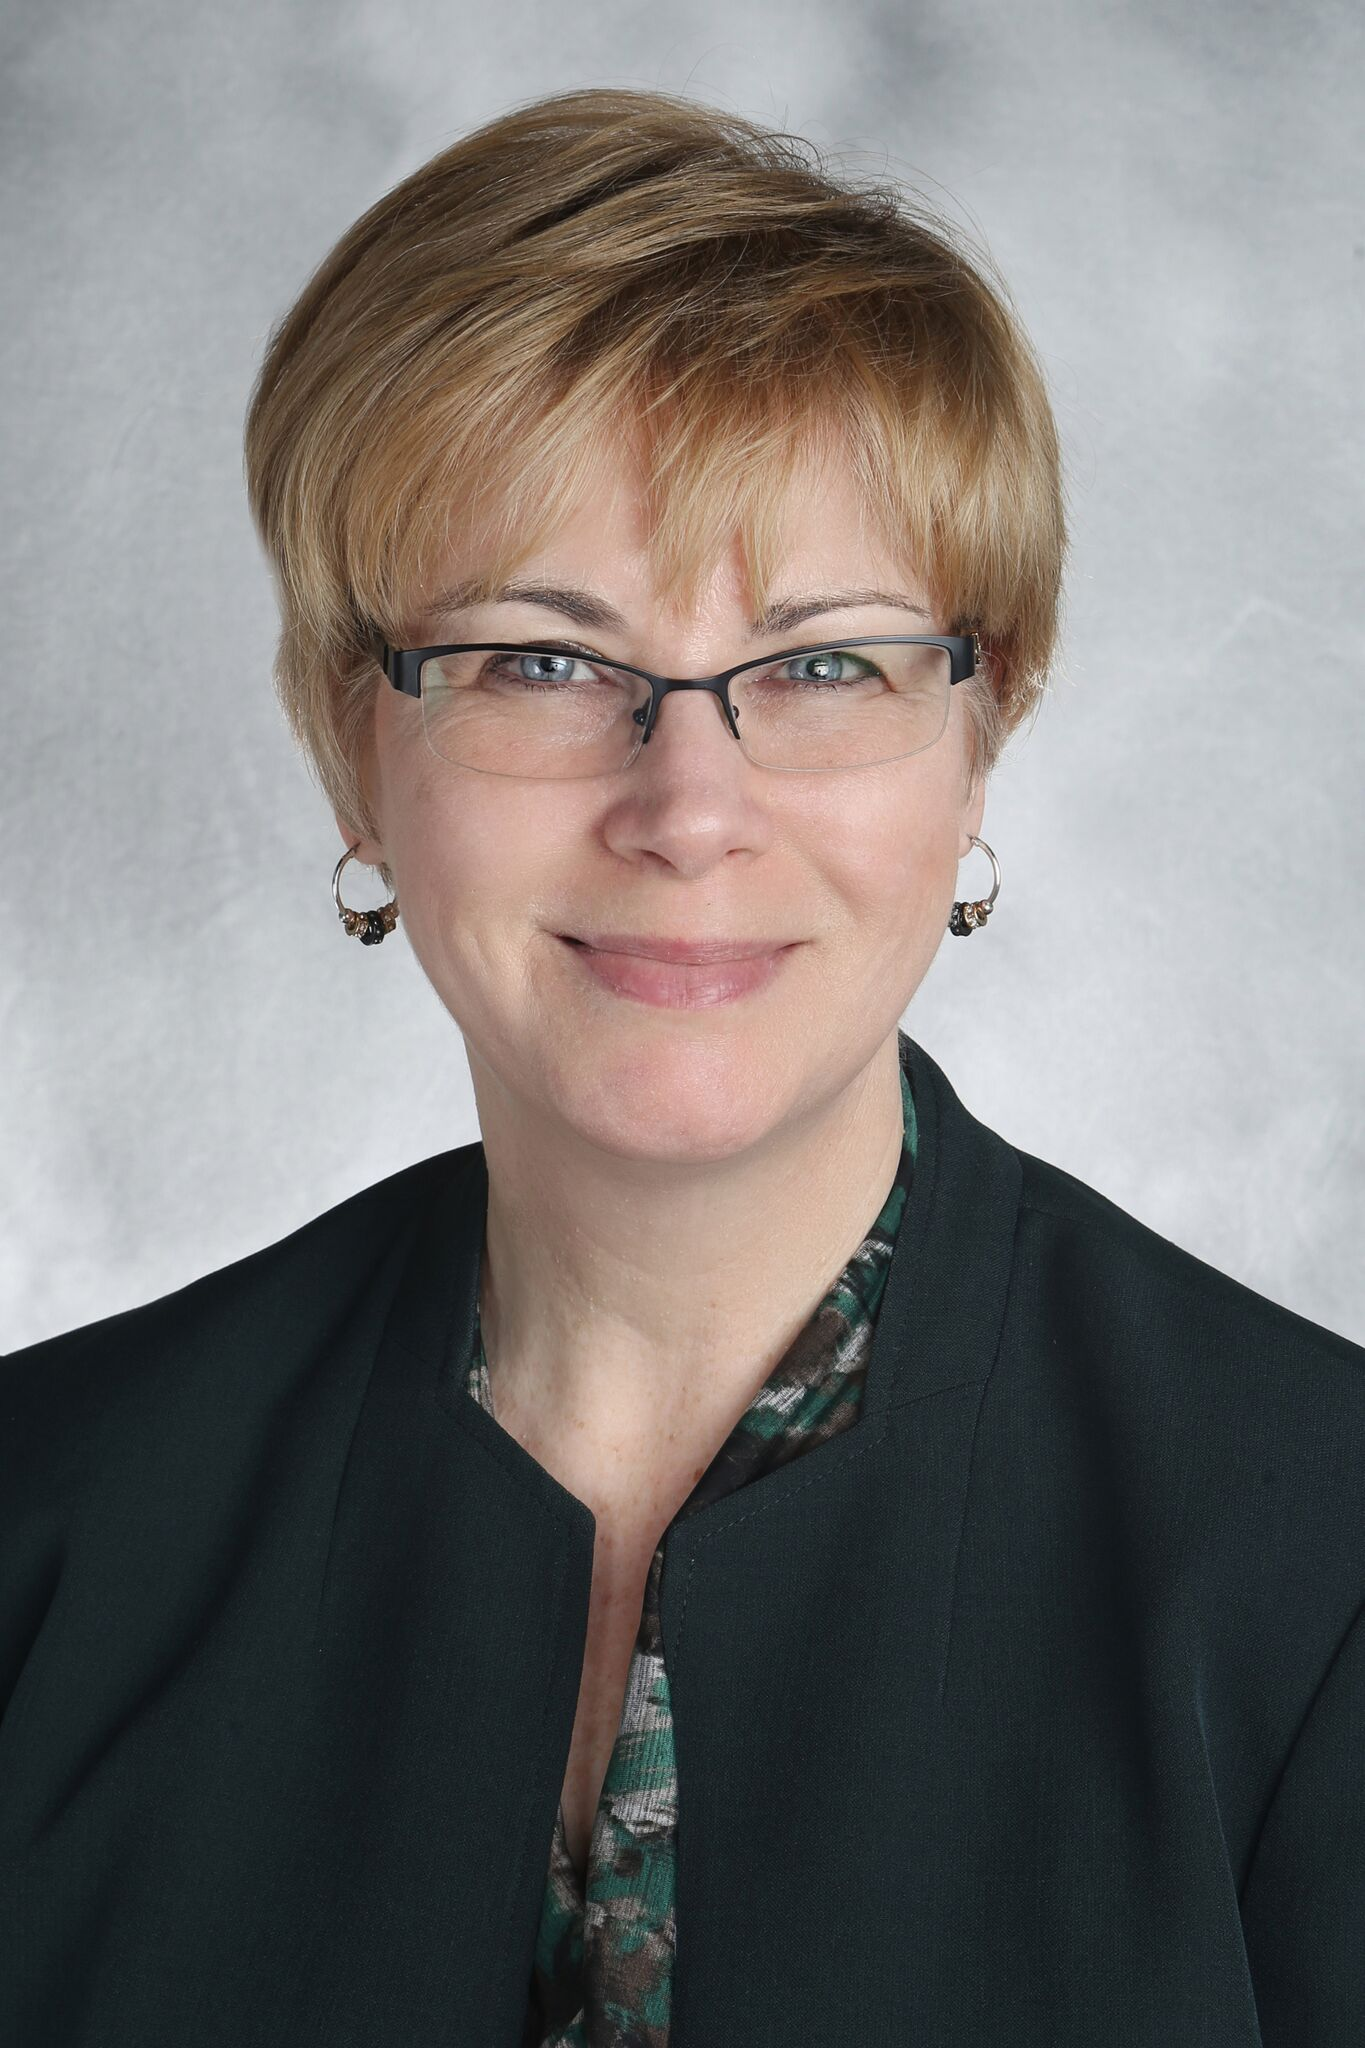 Janet Salazar, Executive Director